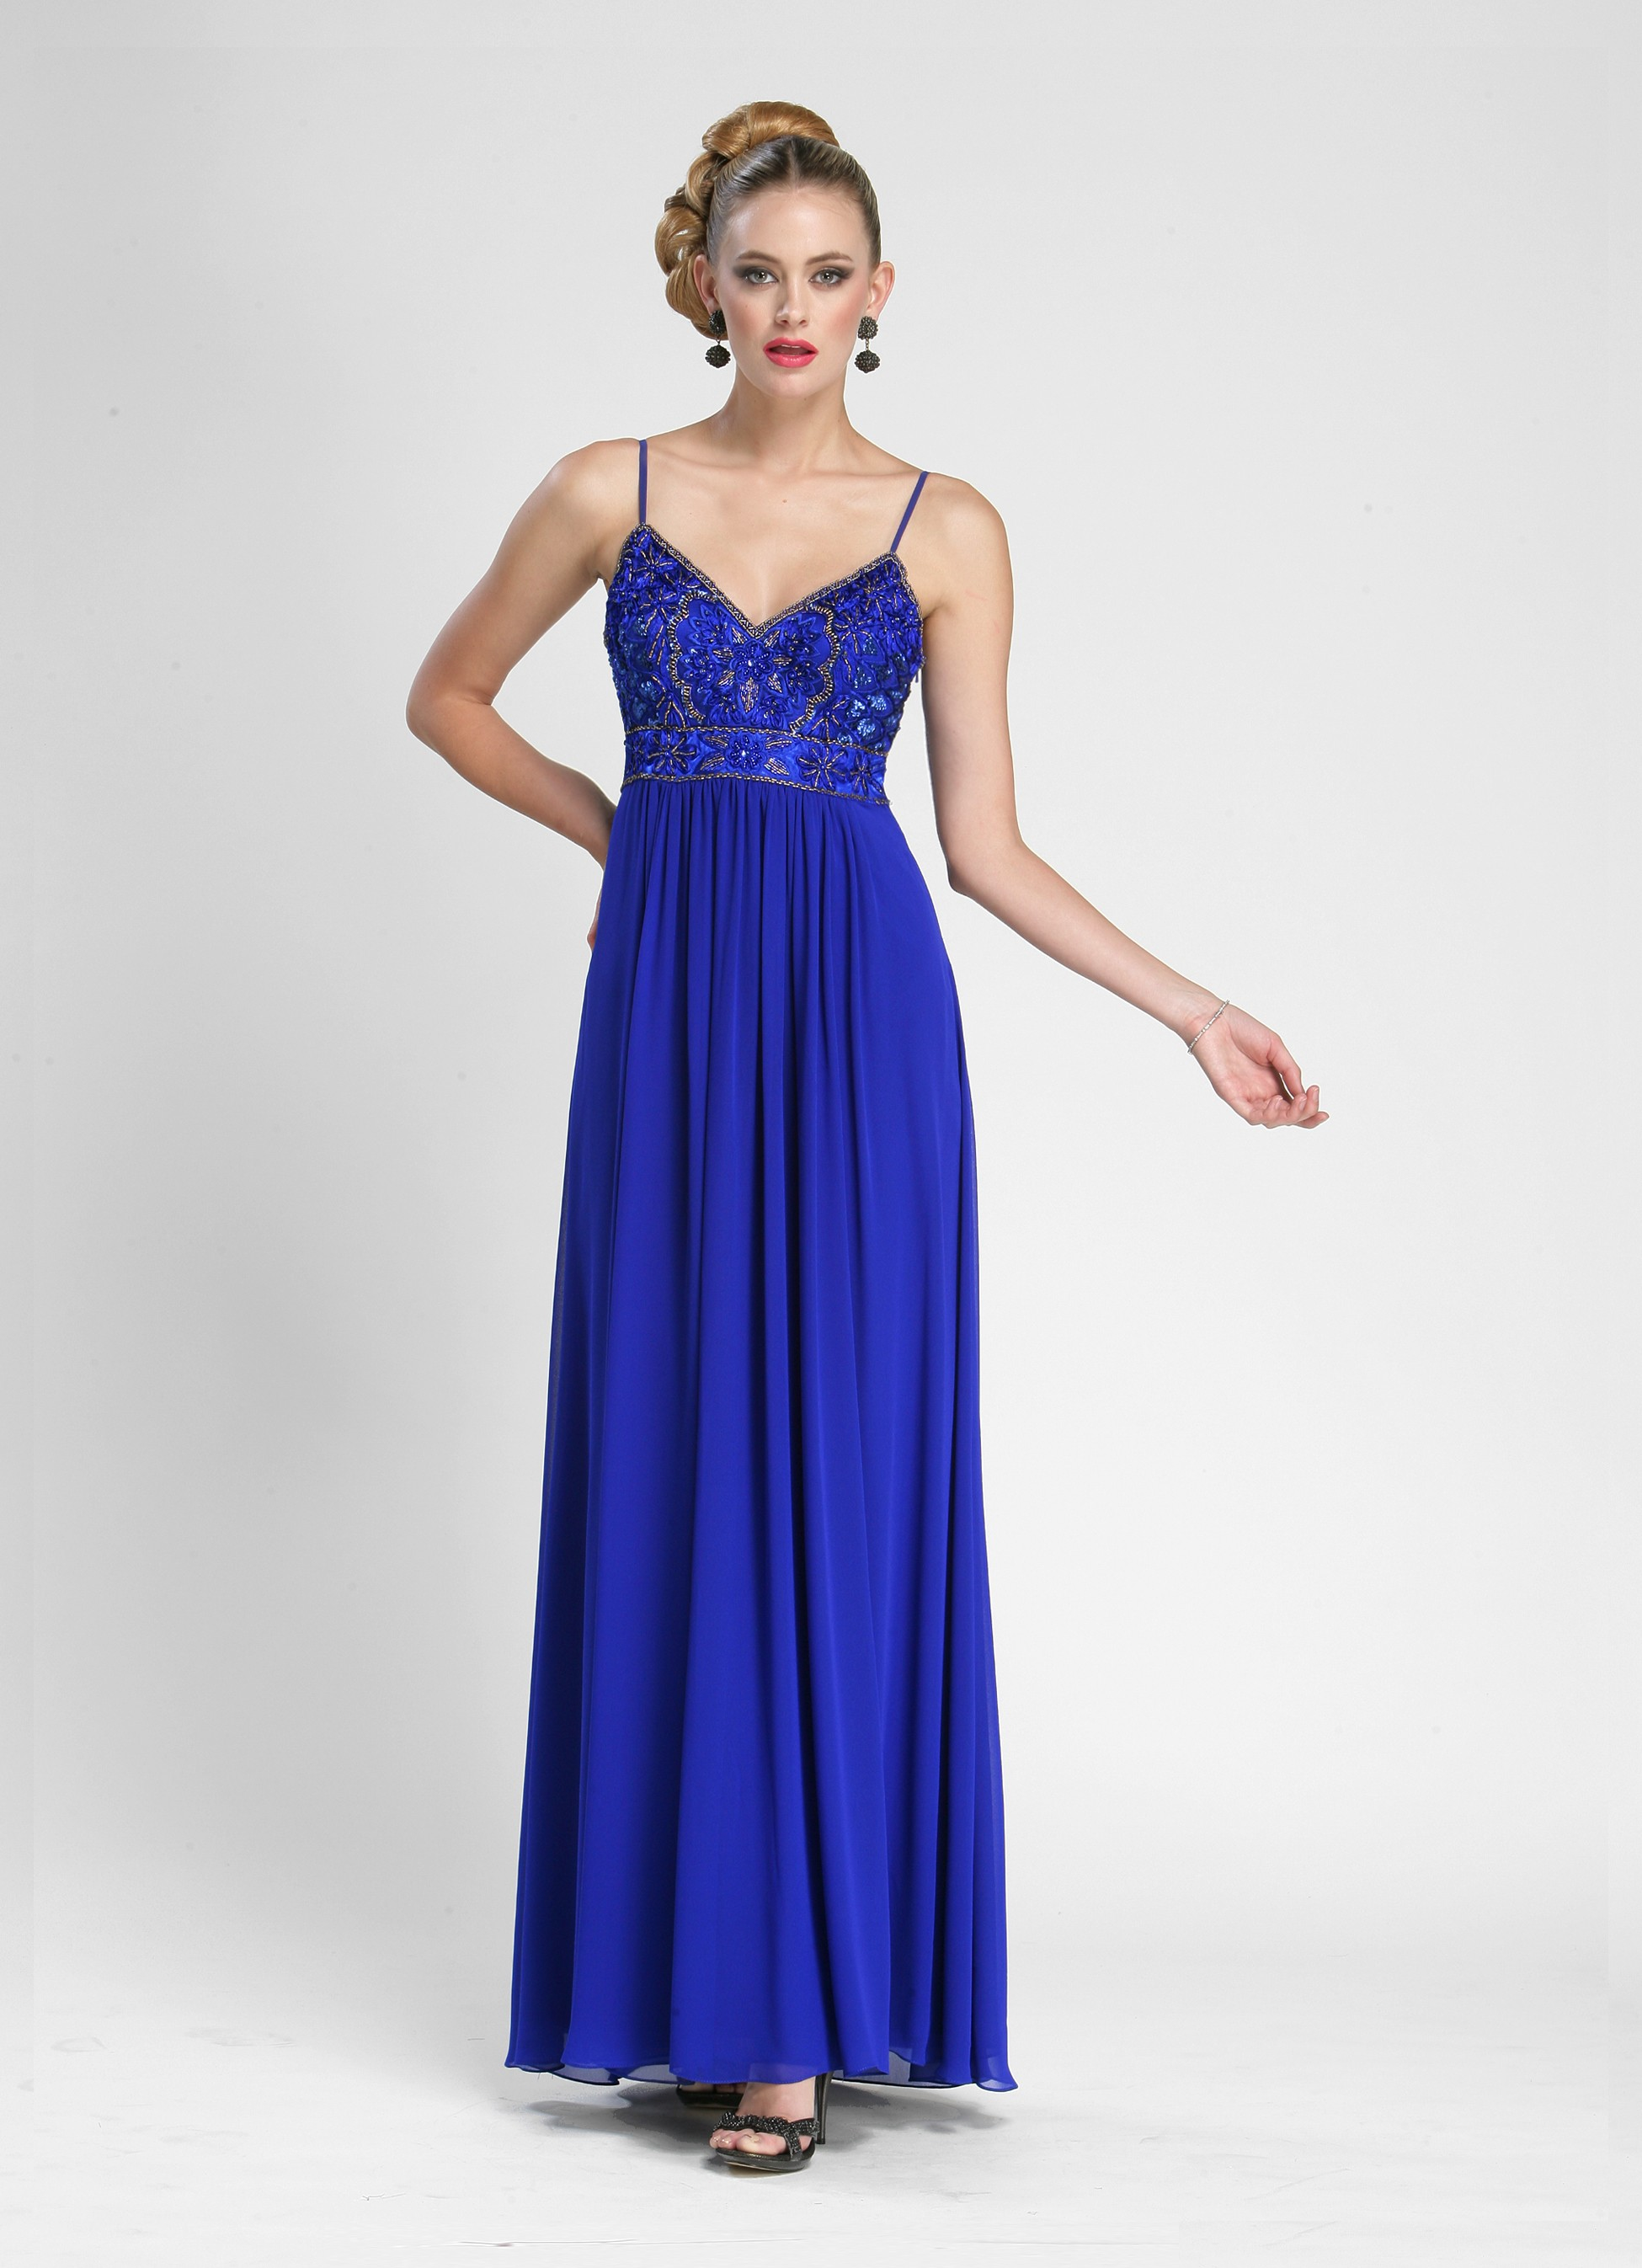 Pure Elegance at the Prom Gown N3402: Buy Sue Wong Dresses at the WS